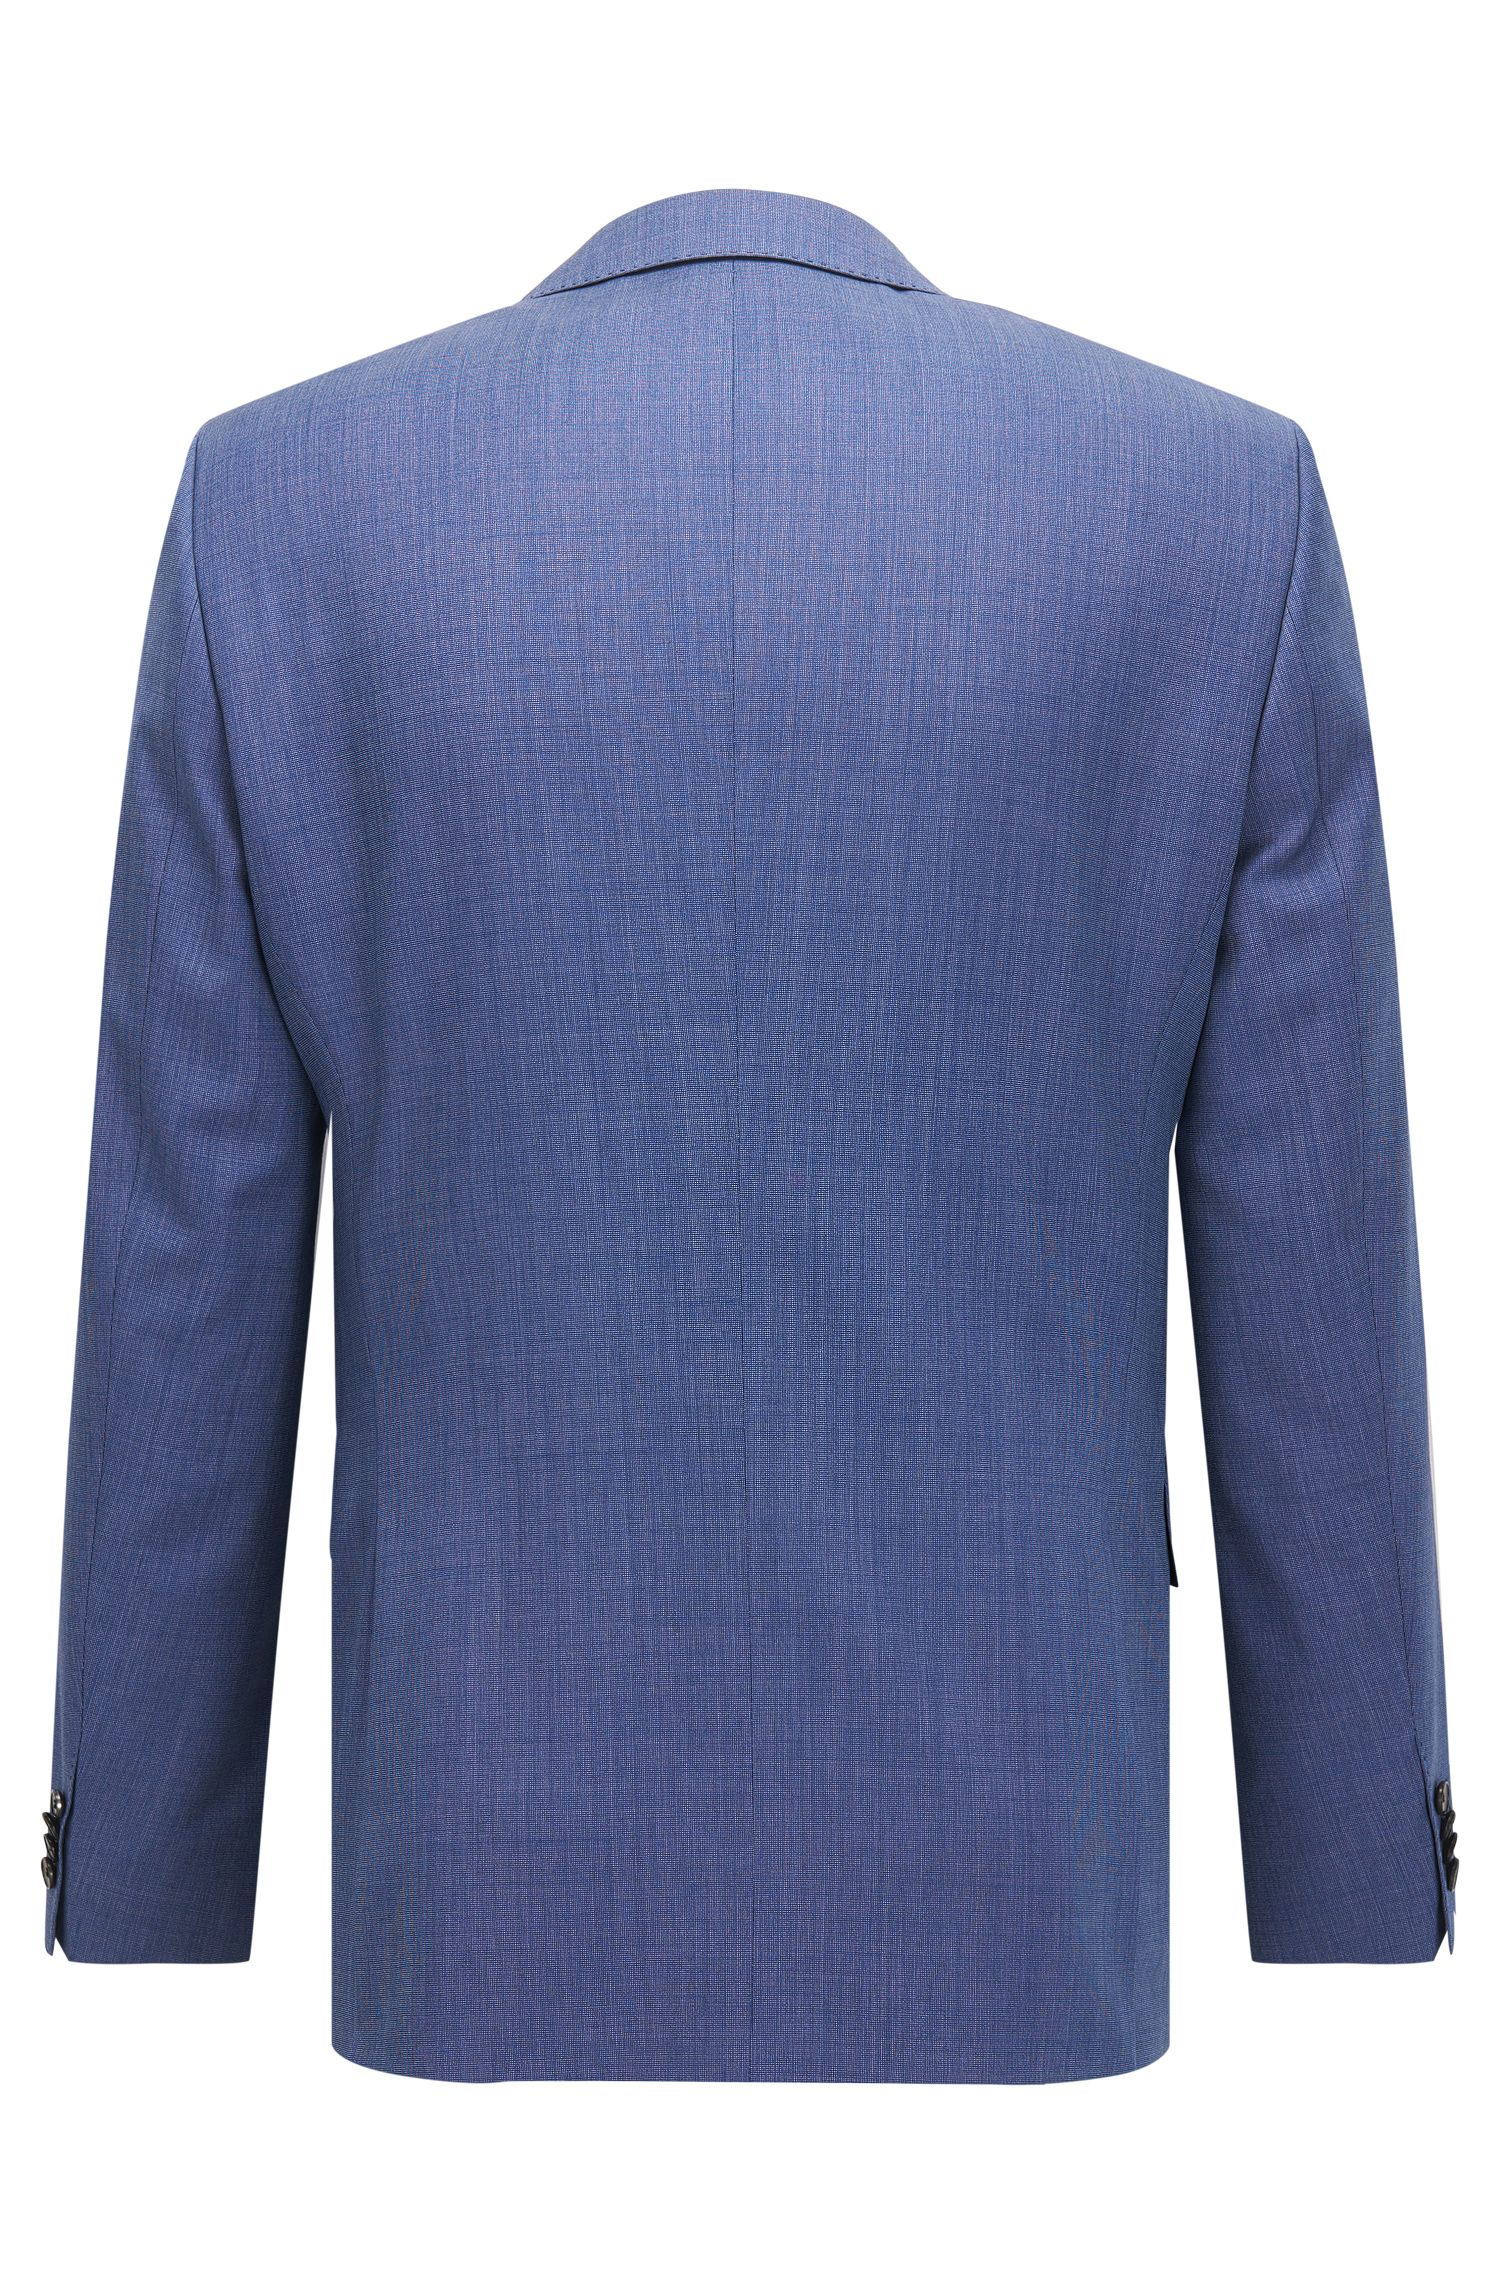 Birdseye Virgin Wool Suit, Slim Fit | Huge/Genius, Blue